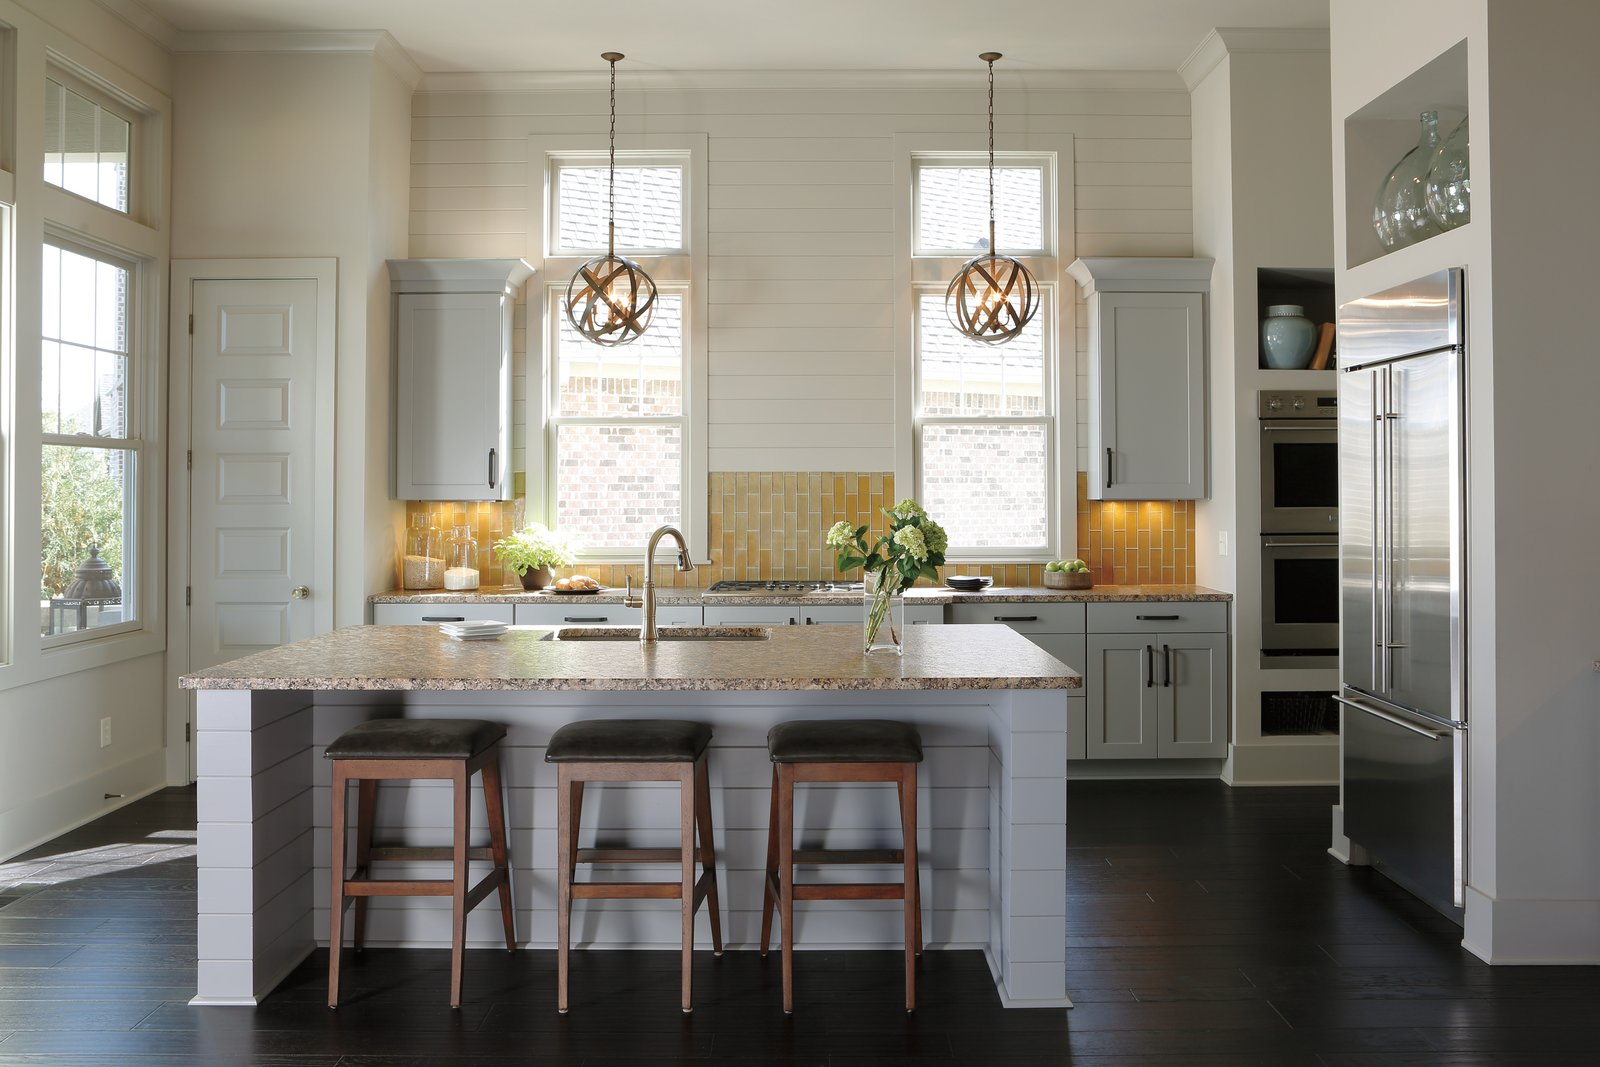 Photo 2 of 8 in 8 Ways to Refresh and Personalize Your Kitchen